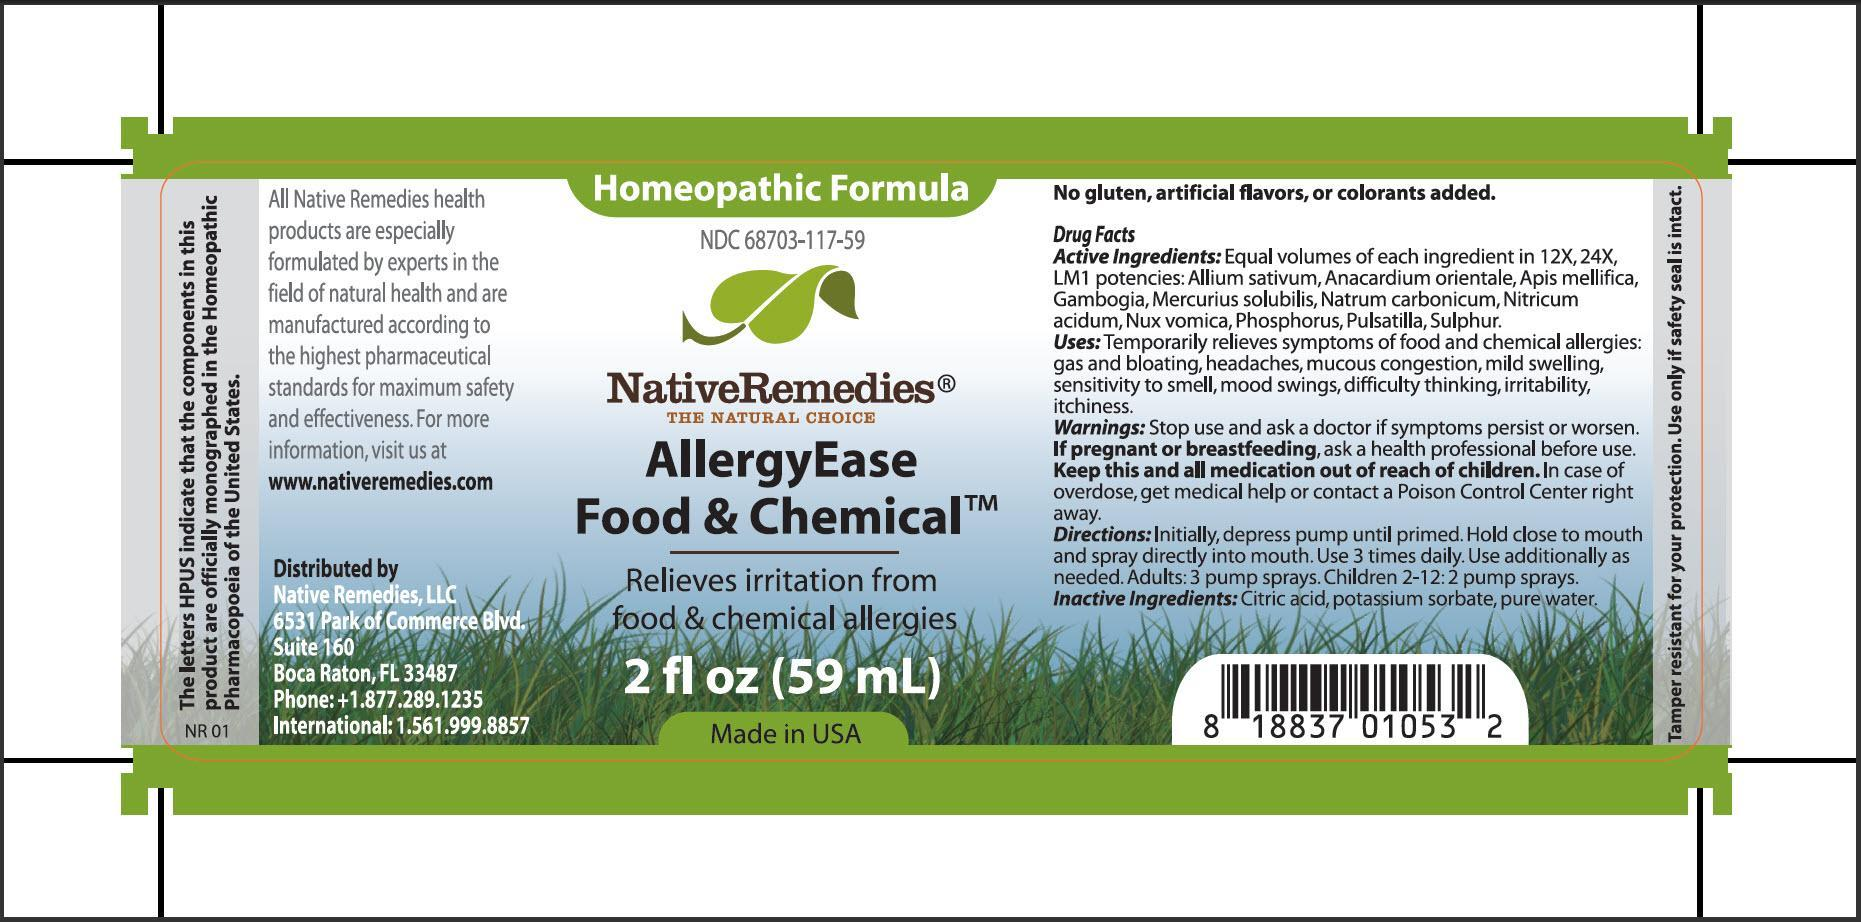 Allerguease Food And Chemical (Allium Sativum, Anacardium Orientale, Apis Mellifica, Gambogia, Mercuris Solubilis, Natrum Carbonicum, Nitricum Acidum, Nux Vomica, Phosphorus, Pulsatilla, Sulphur) Spray [Native Remedies, Llc]